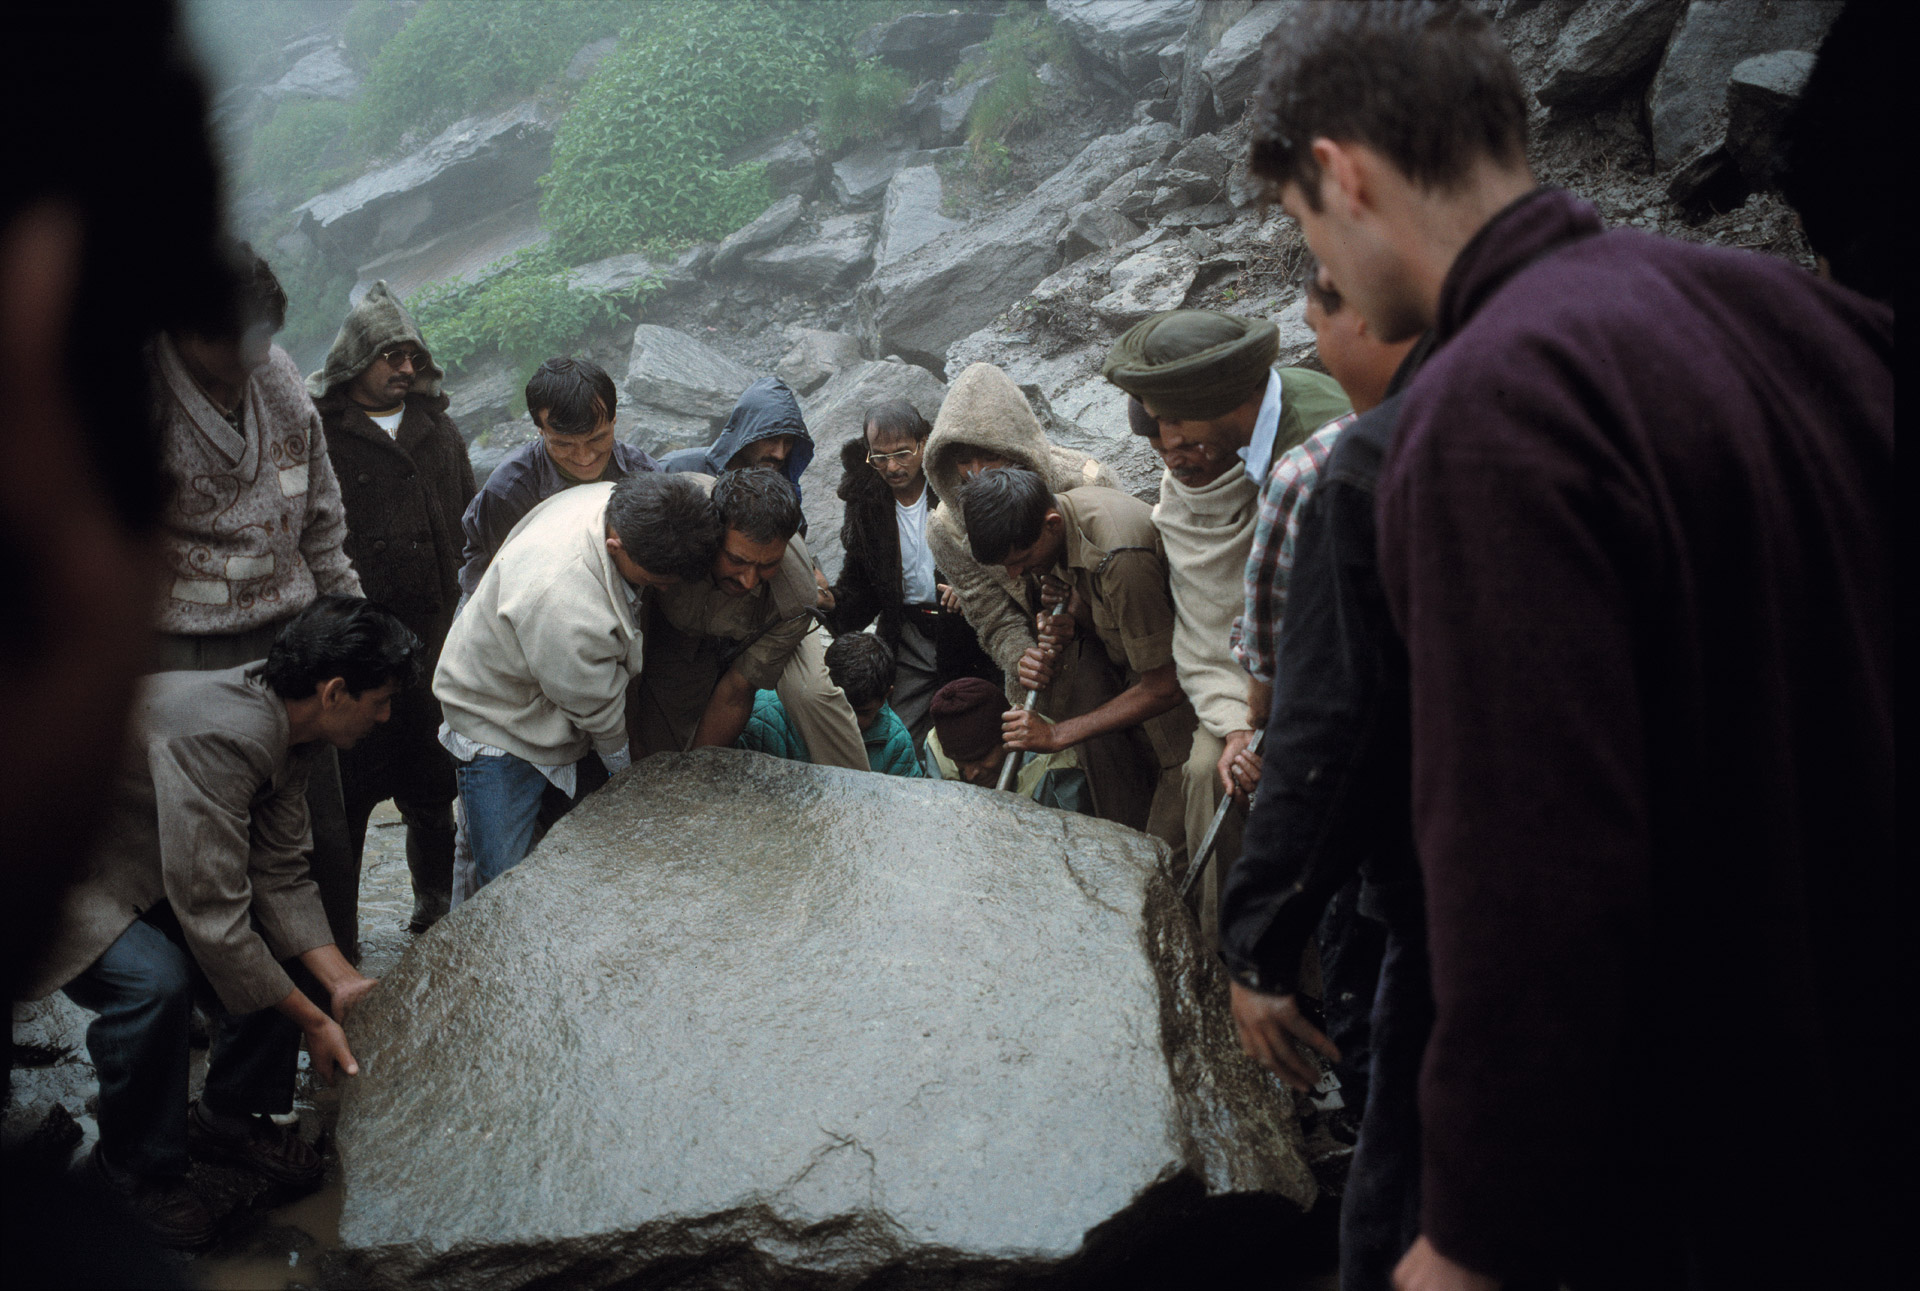 Indian civilians, soldiers and a few tourists collaborate to remove a big stone that blocked the road in the Himalaya Mountains in India